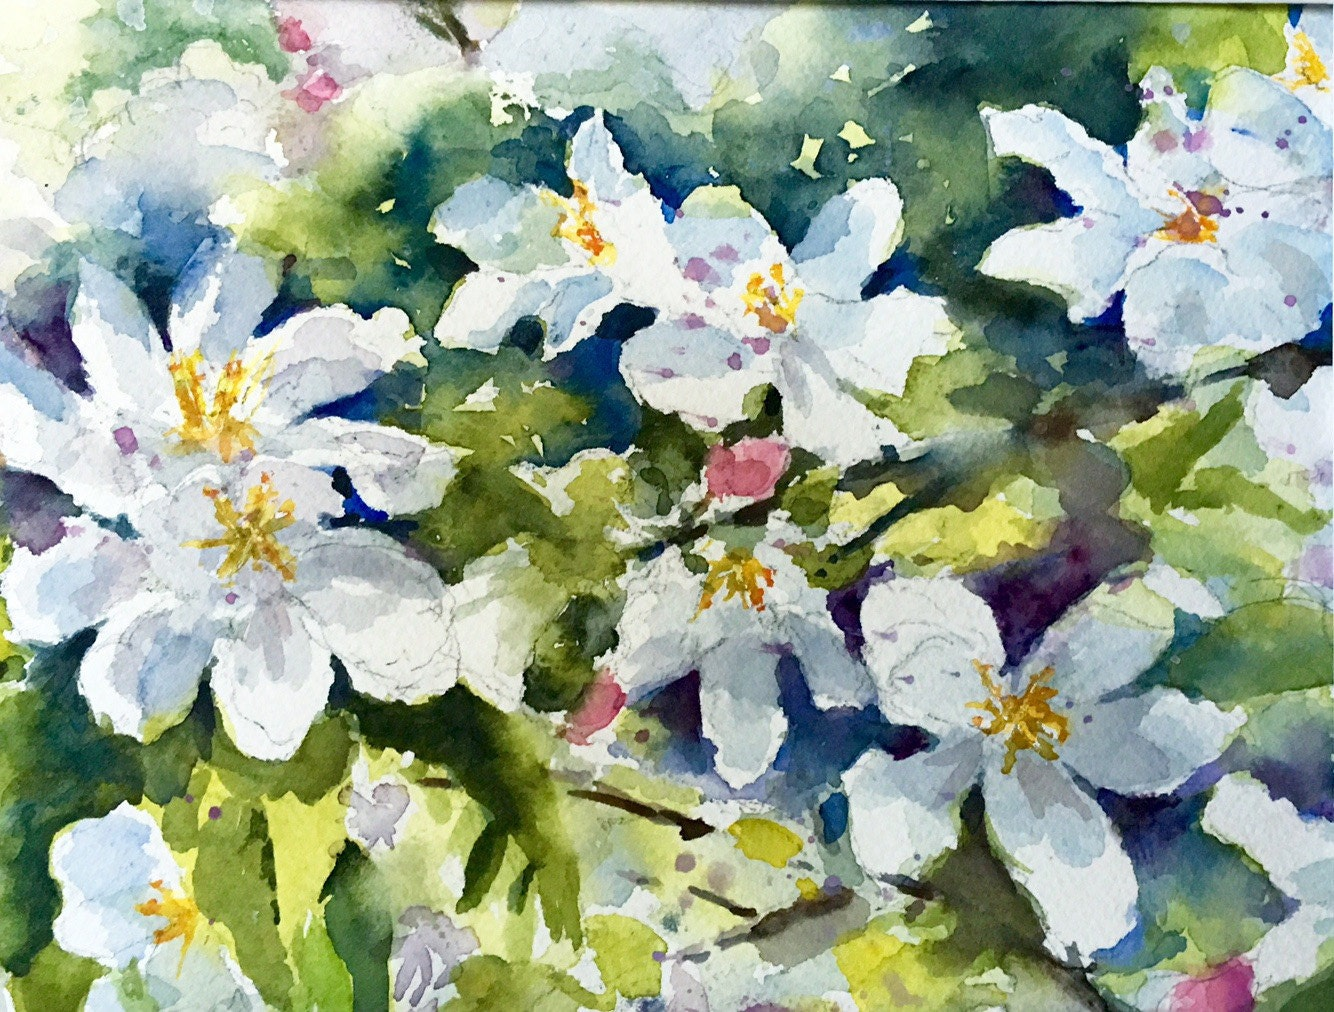 Apple blossoms spring flowers watercolor original painting for Spring flowers watercolor